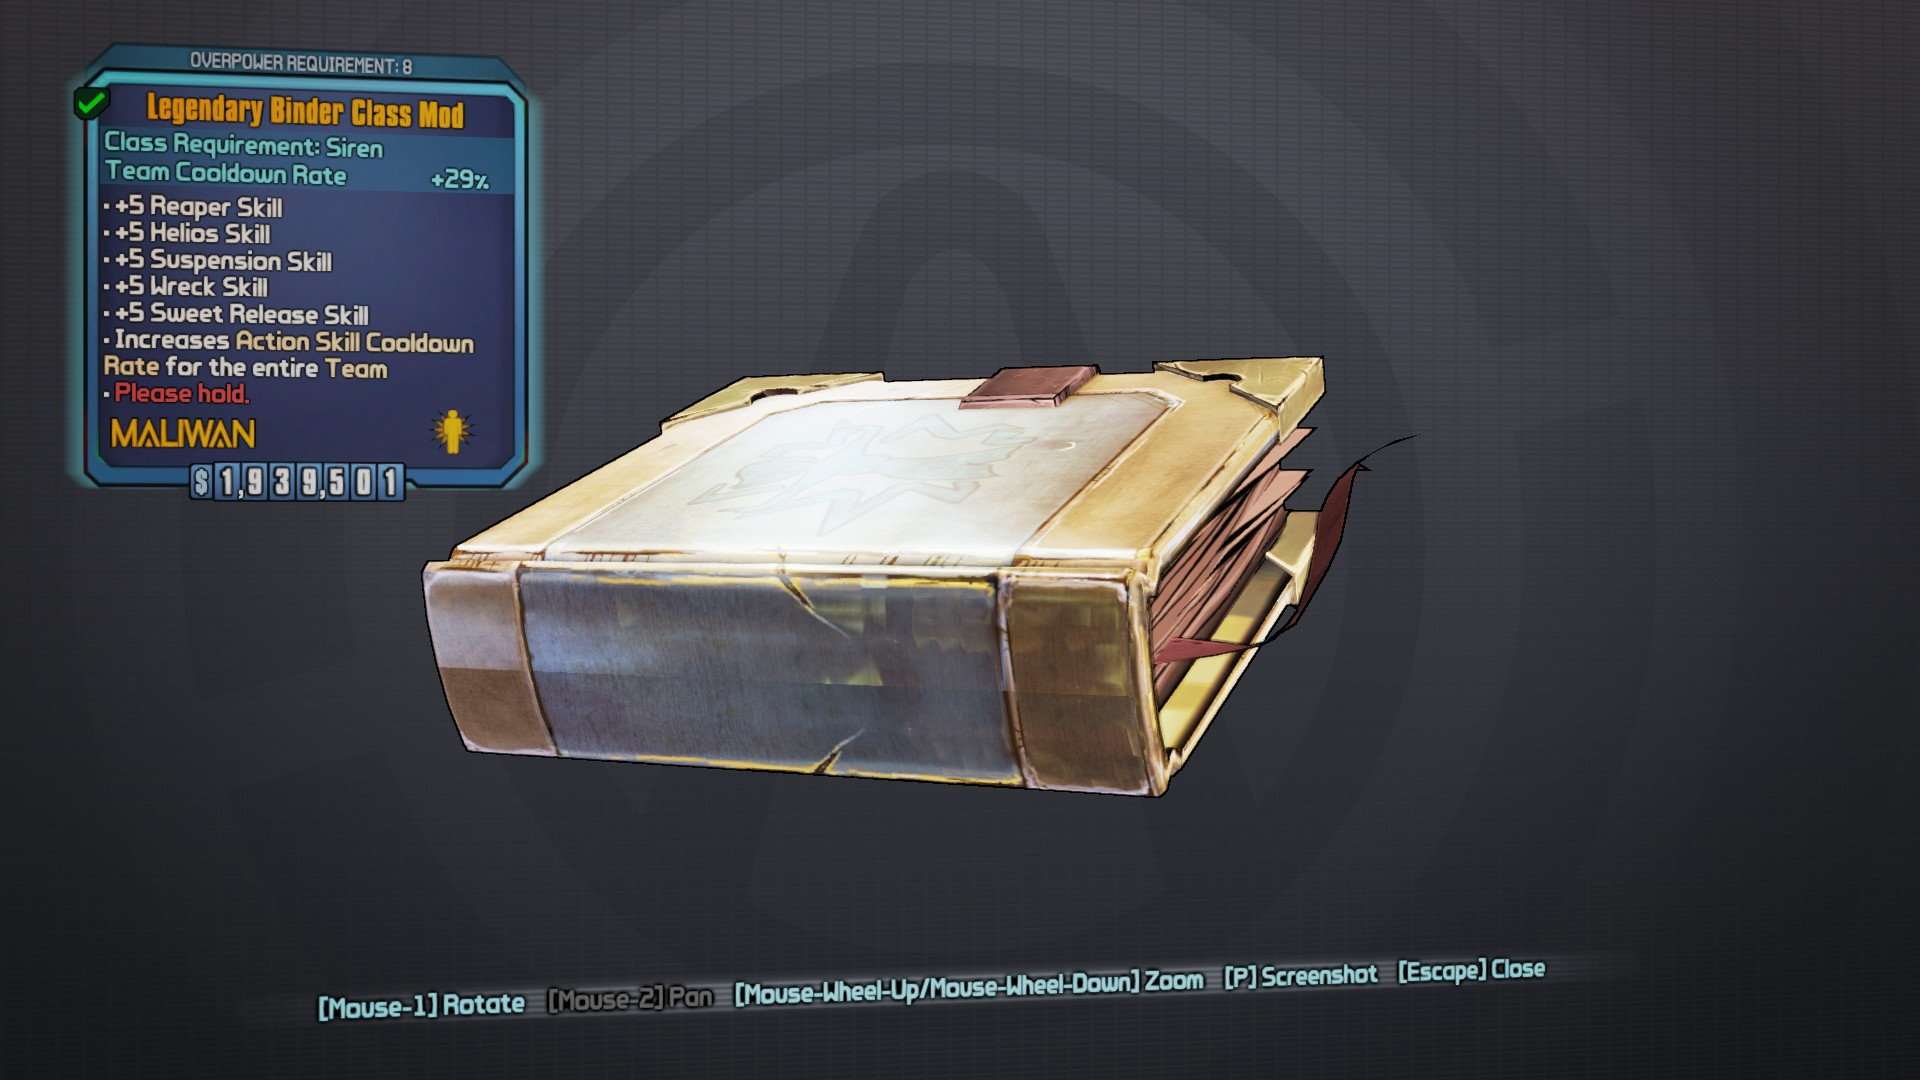 Borderlands 2 legendary cat class mod gibbed code